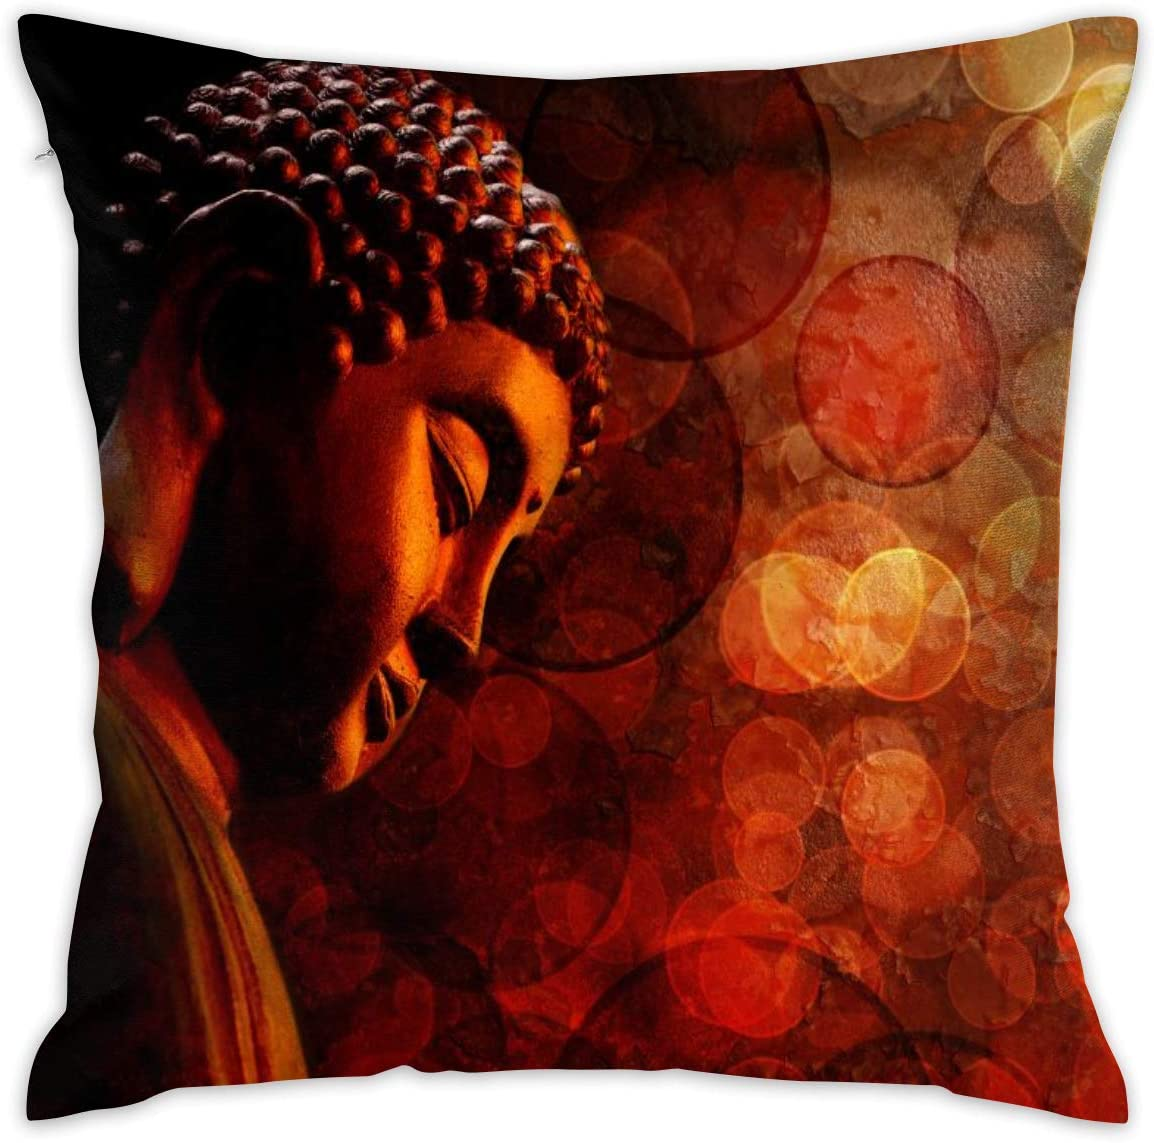 Bronze Zen Buddha Statue Meditating Blurred Decorative Throw Pillow Cover Hidden Zipper Closure Cushion Case For Home Sofa Bedroom Car Chair House Party Indoor Outdoor 18 X 18 Inch 45 X